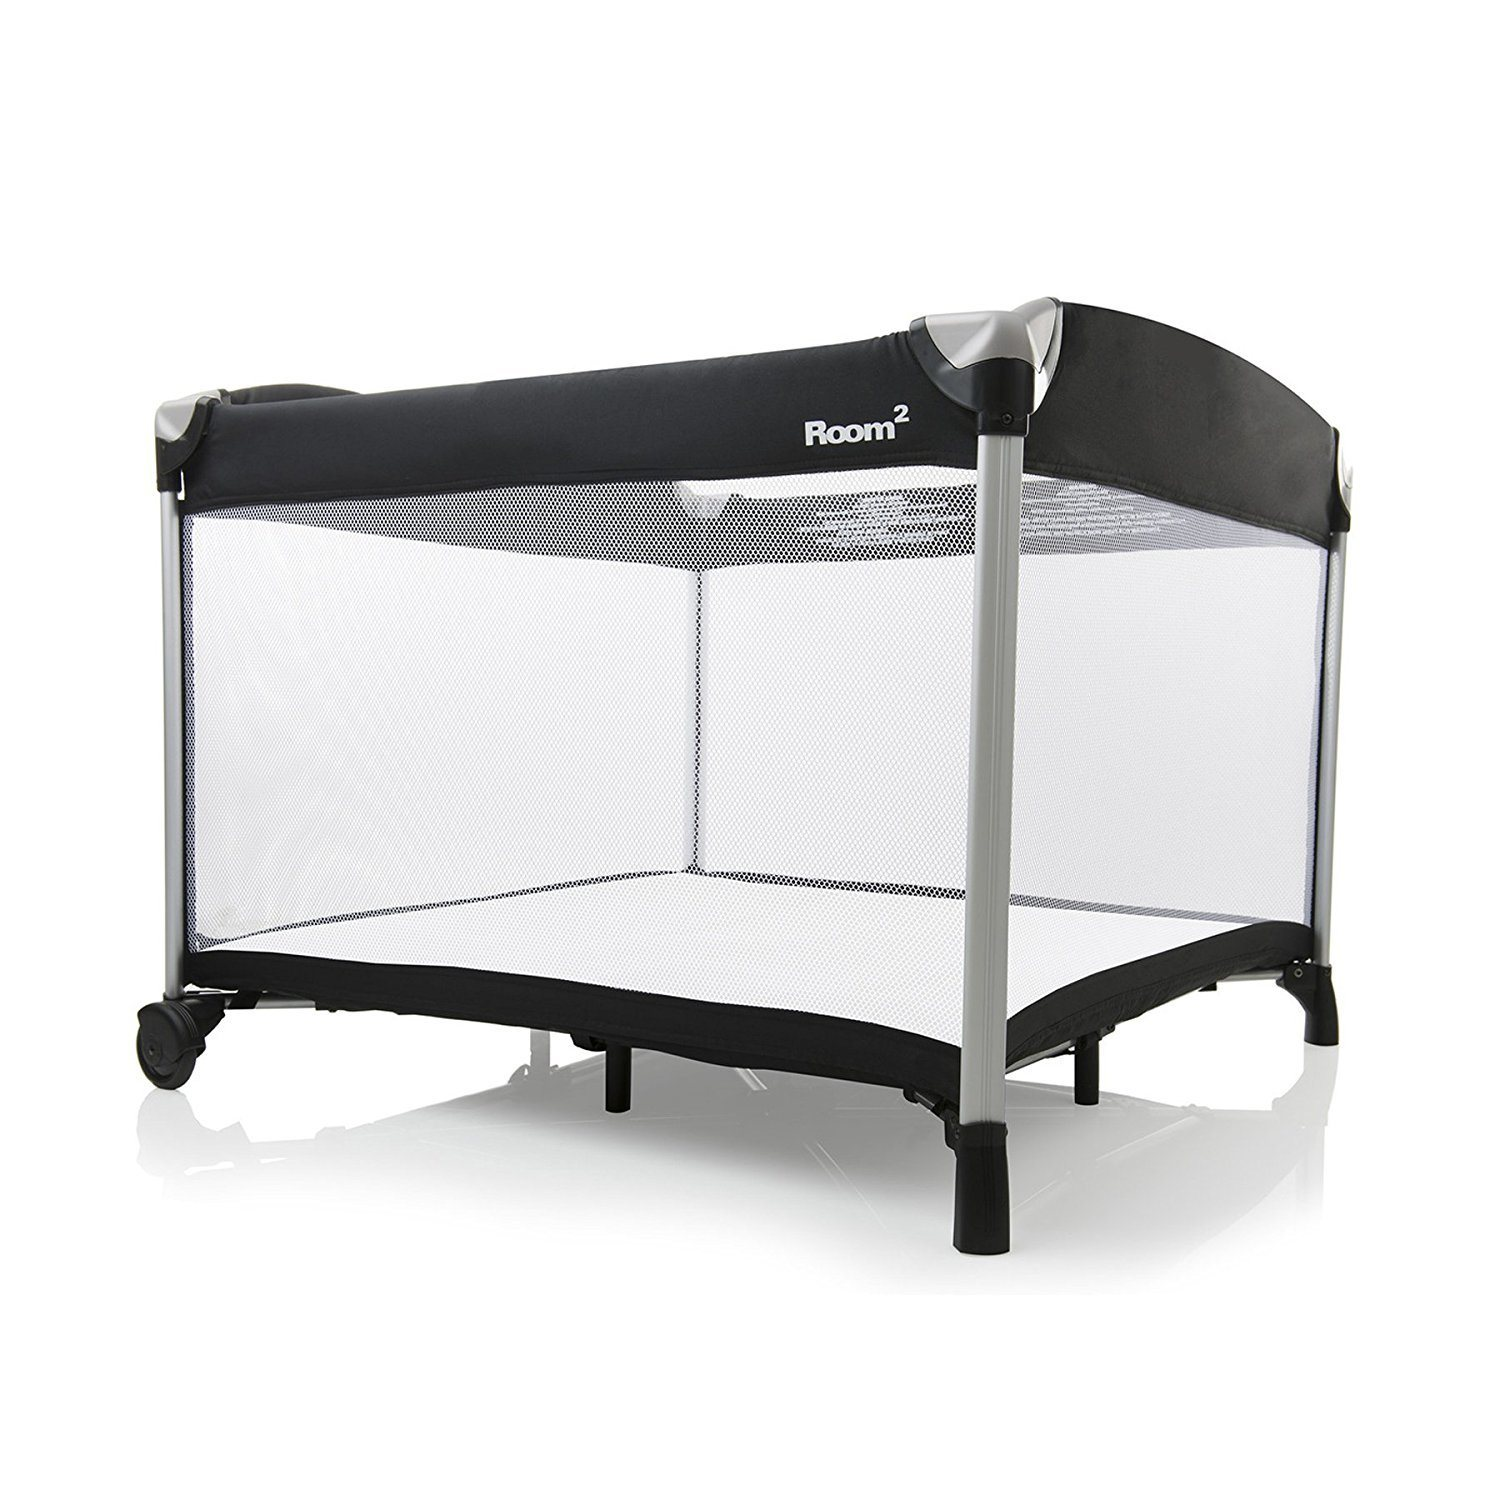 Joovy Room 2 Playard,